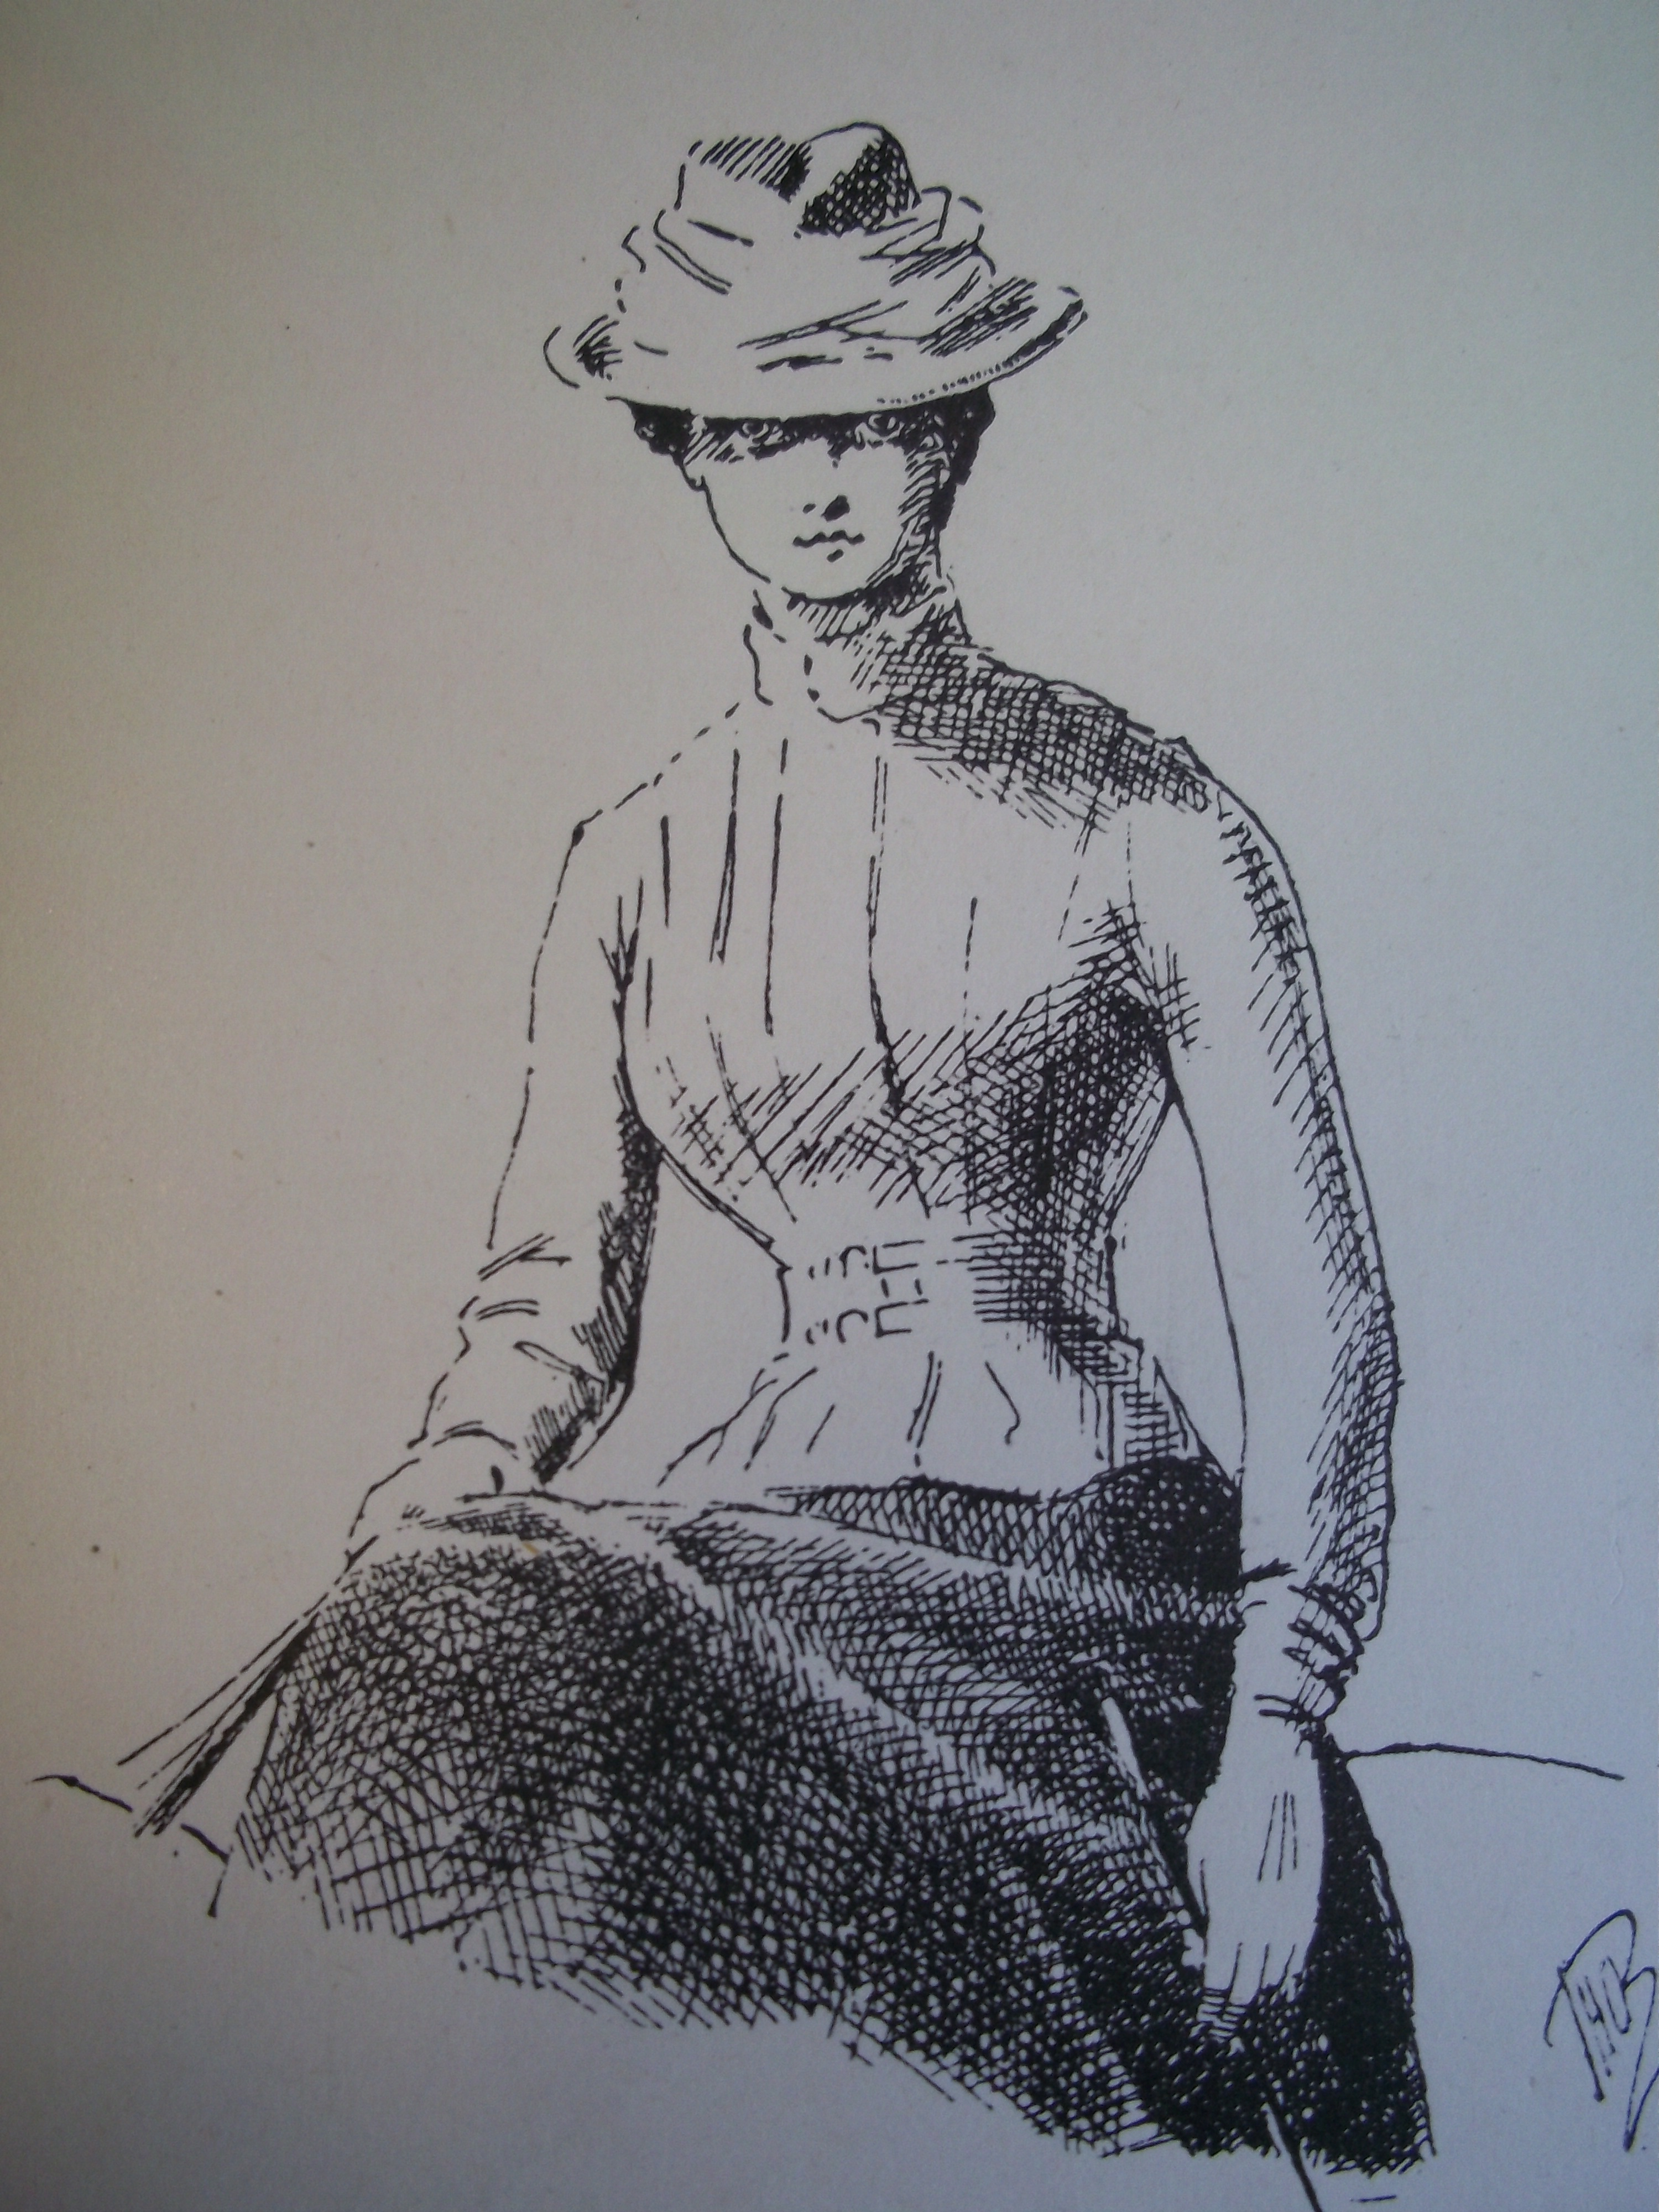 Terai hat and Norfolk jacket, The Horsewoman by Mrs. Hayes (1892)